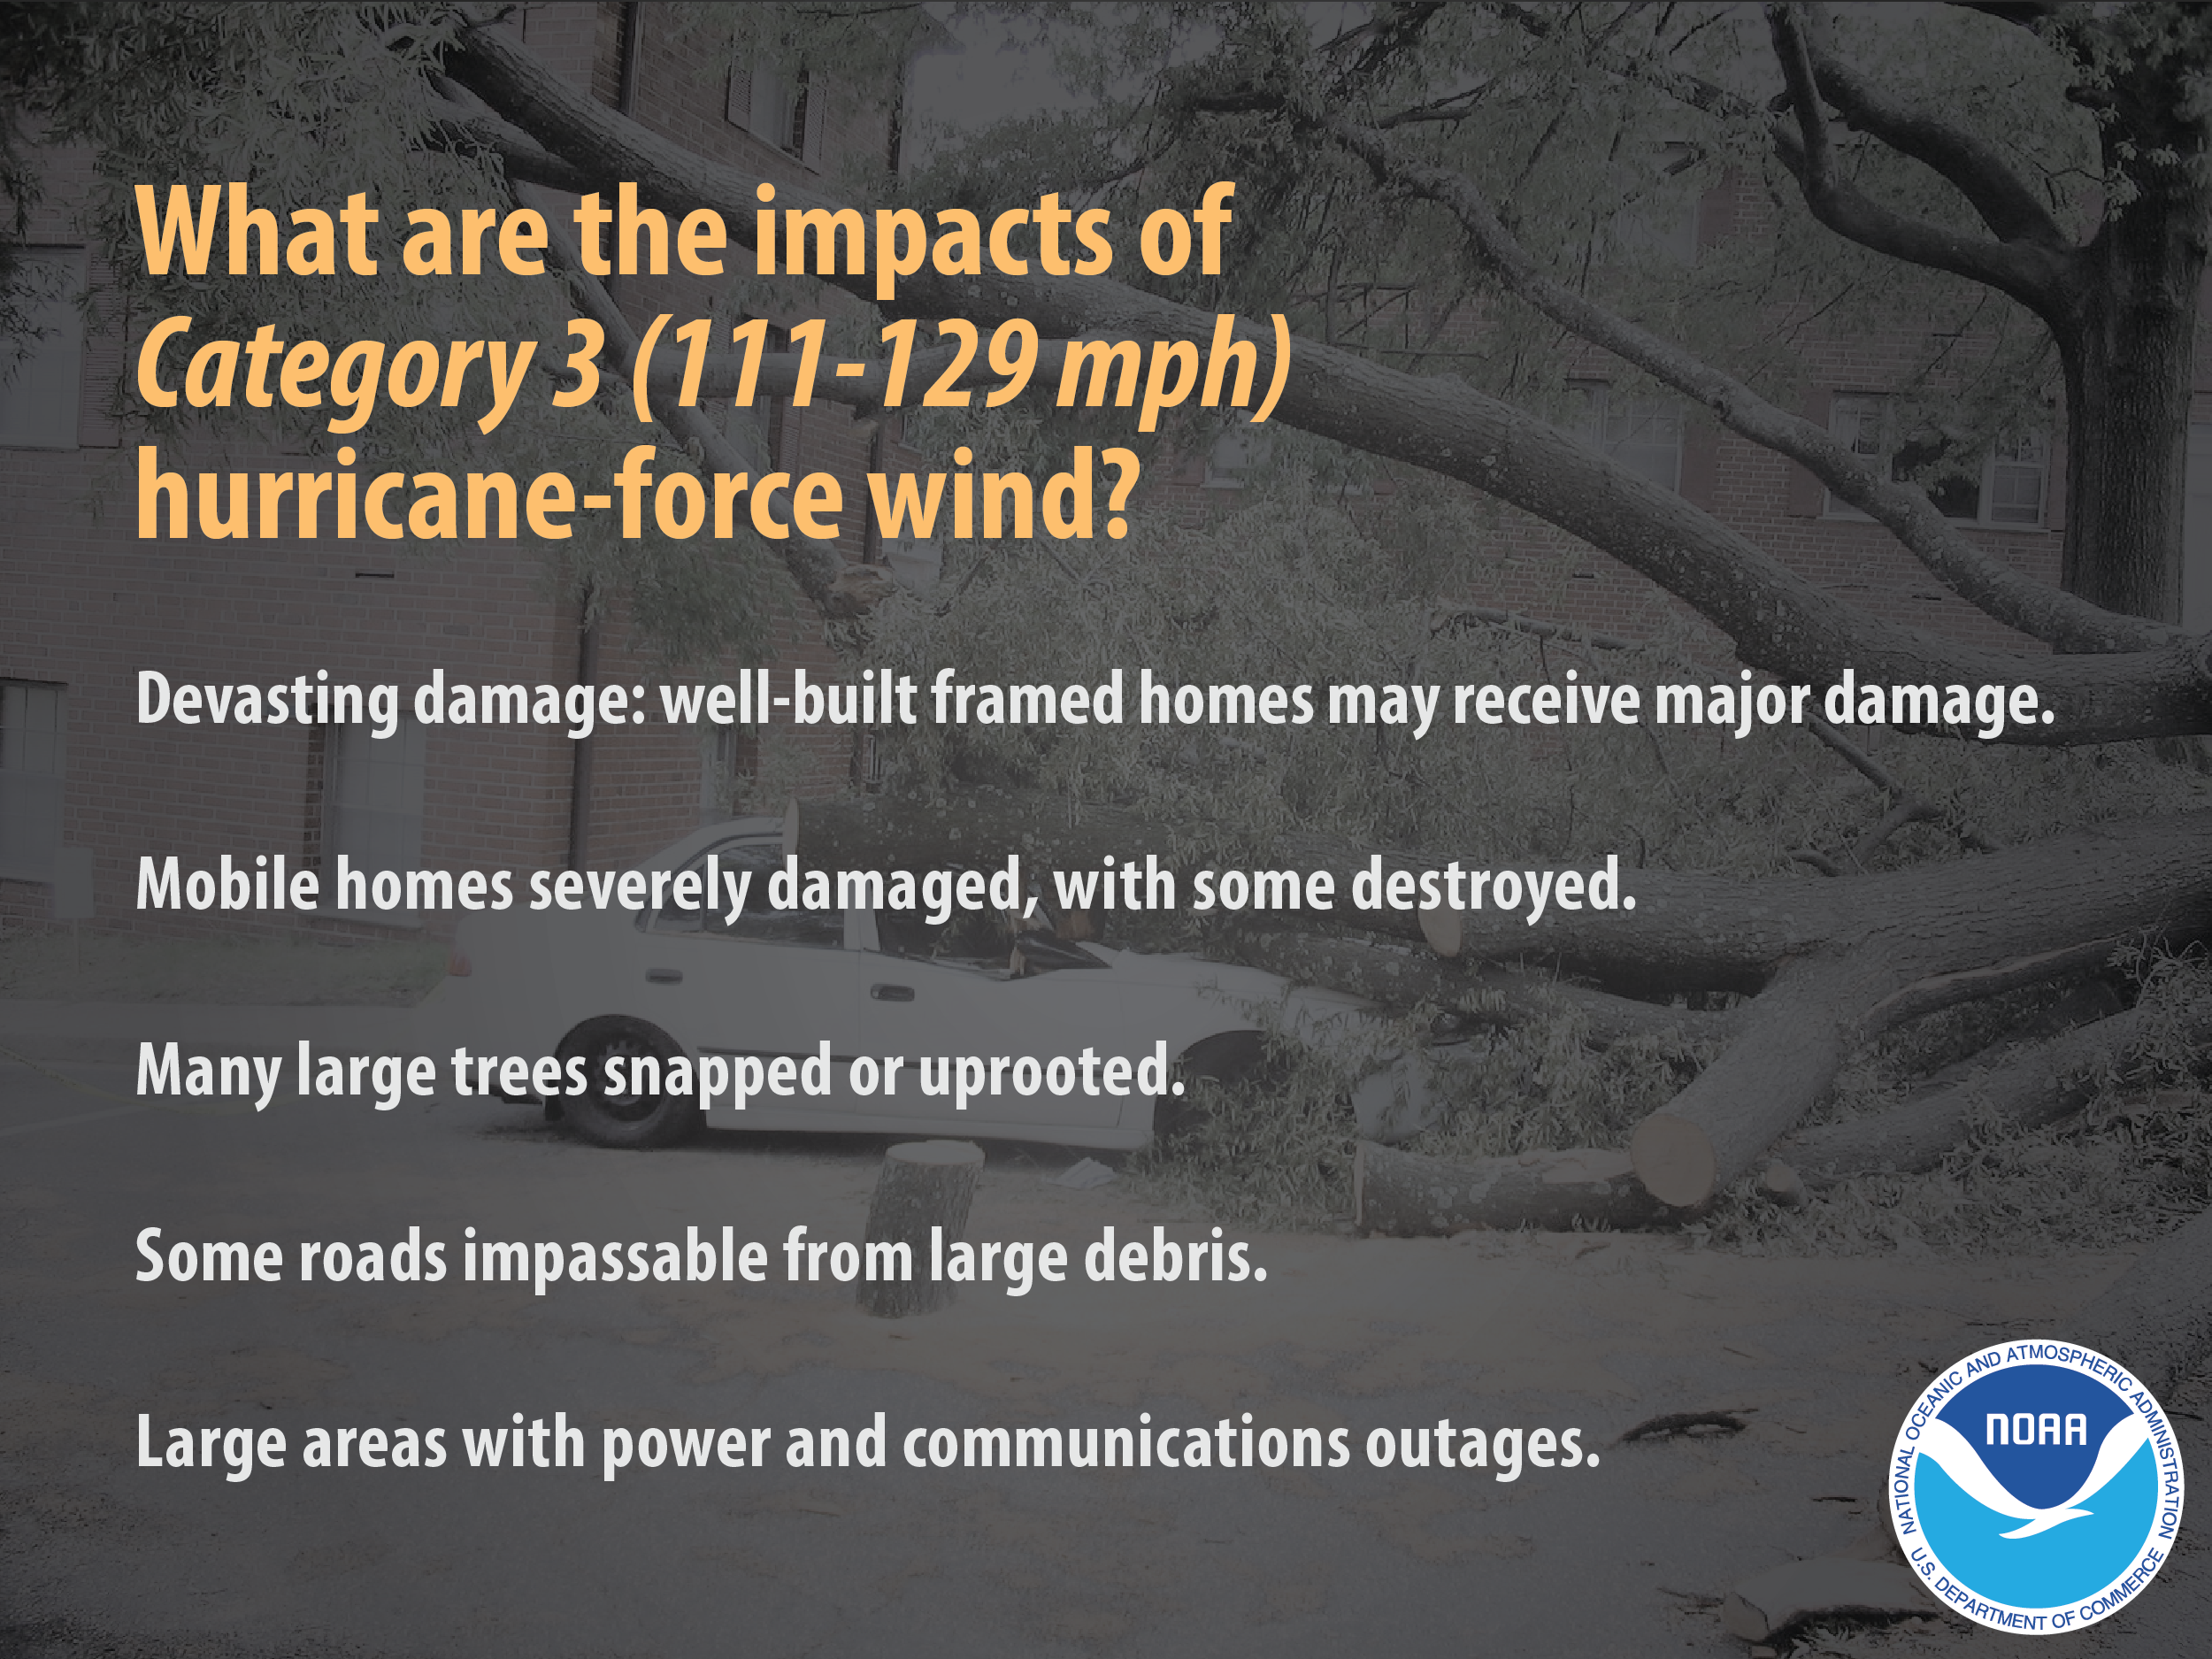 What are the impacts of Category 3 (111-129 mph) hurricane-force wind? Devasting damage: well-built framed homes may receive major damage. Mobile homes severely damaged, with some destroyed. Many large trees snapped or uprooted. Some roads impassable from large debris. Large areas with power and communications outages.